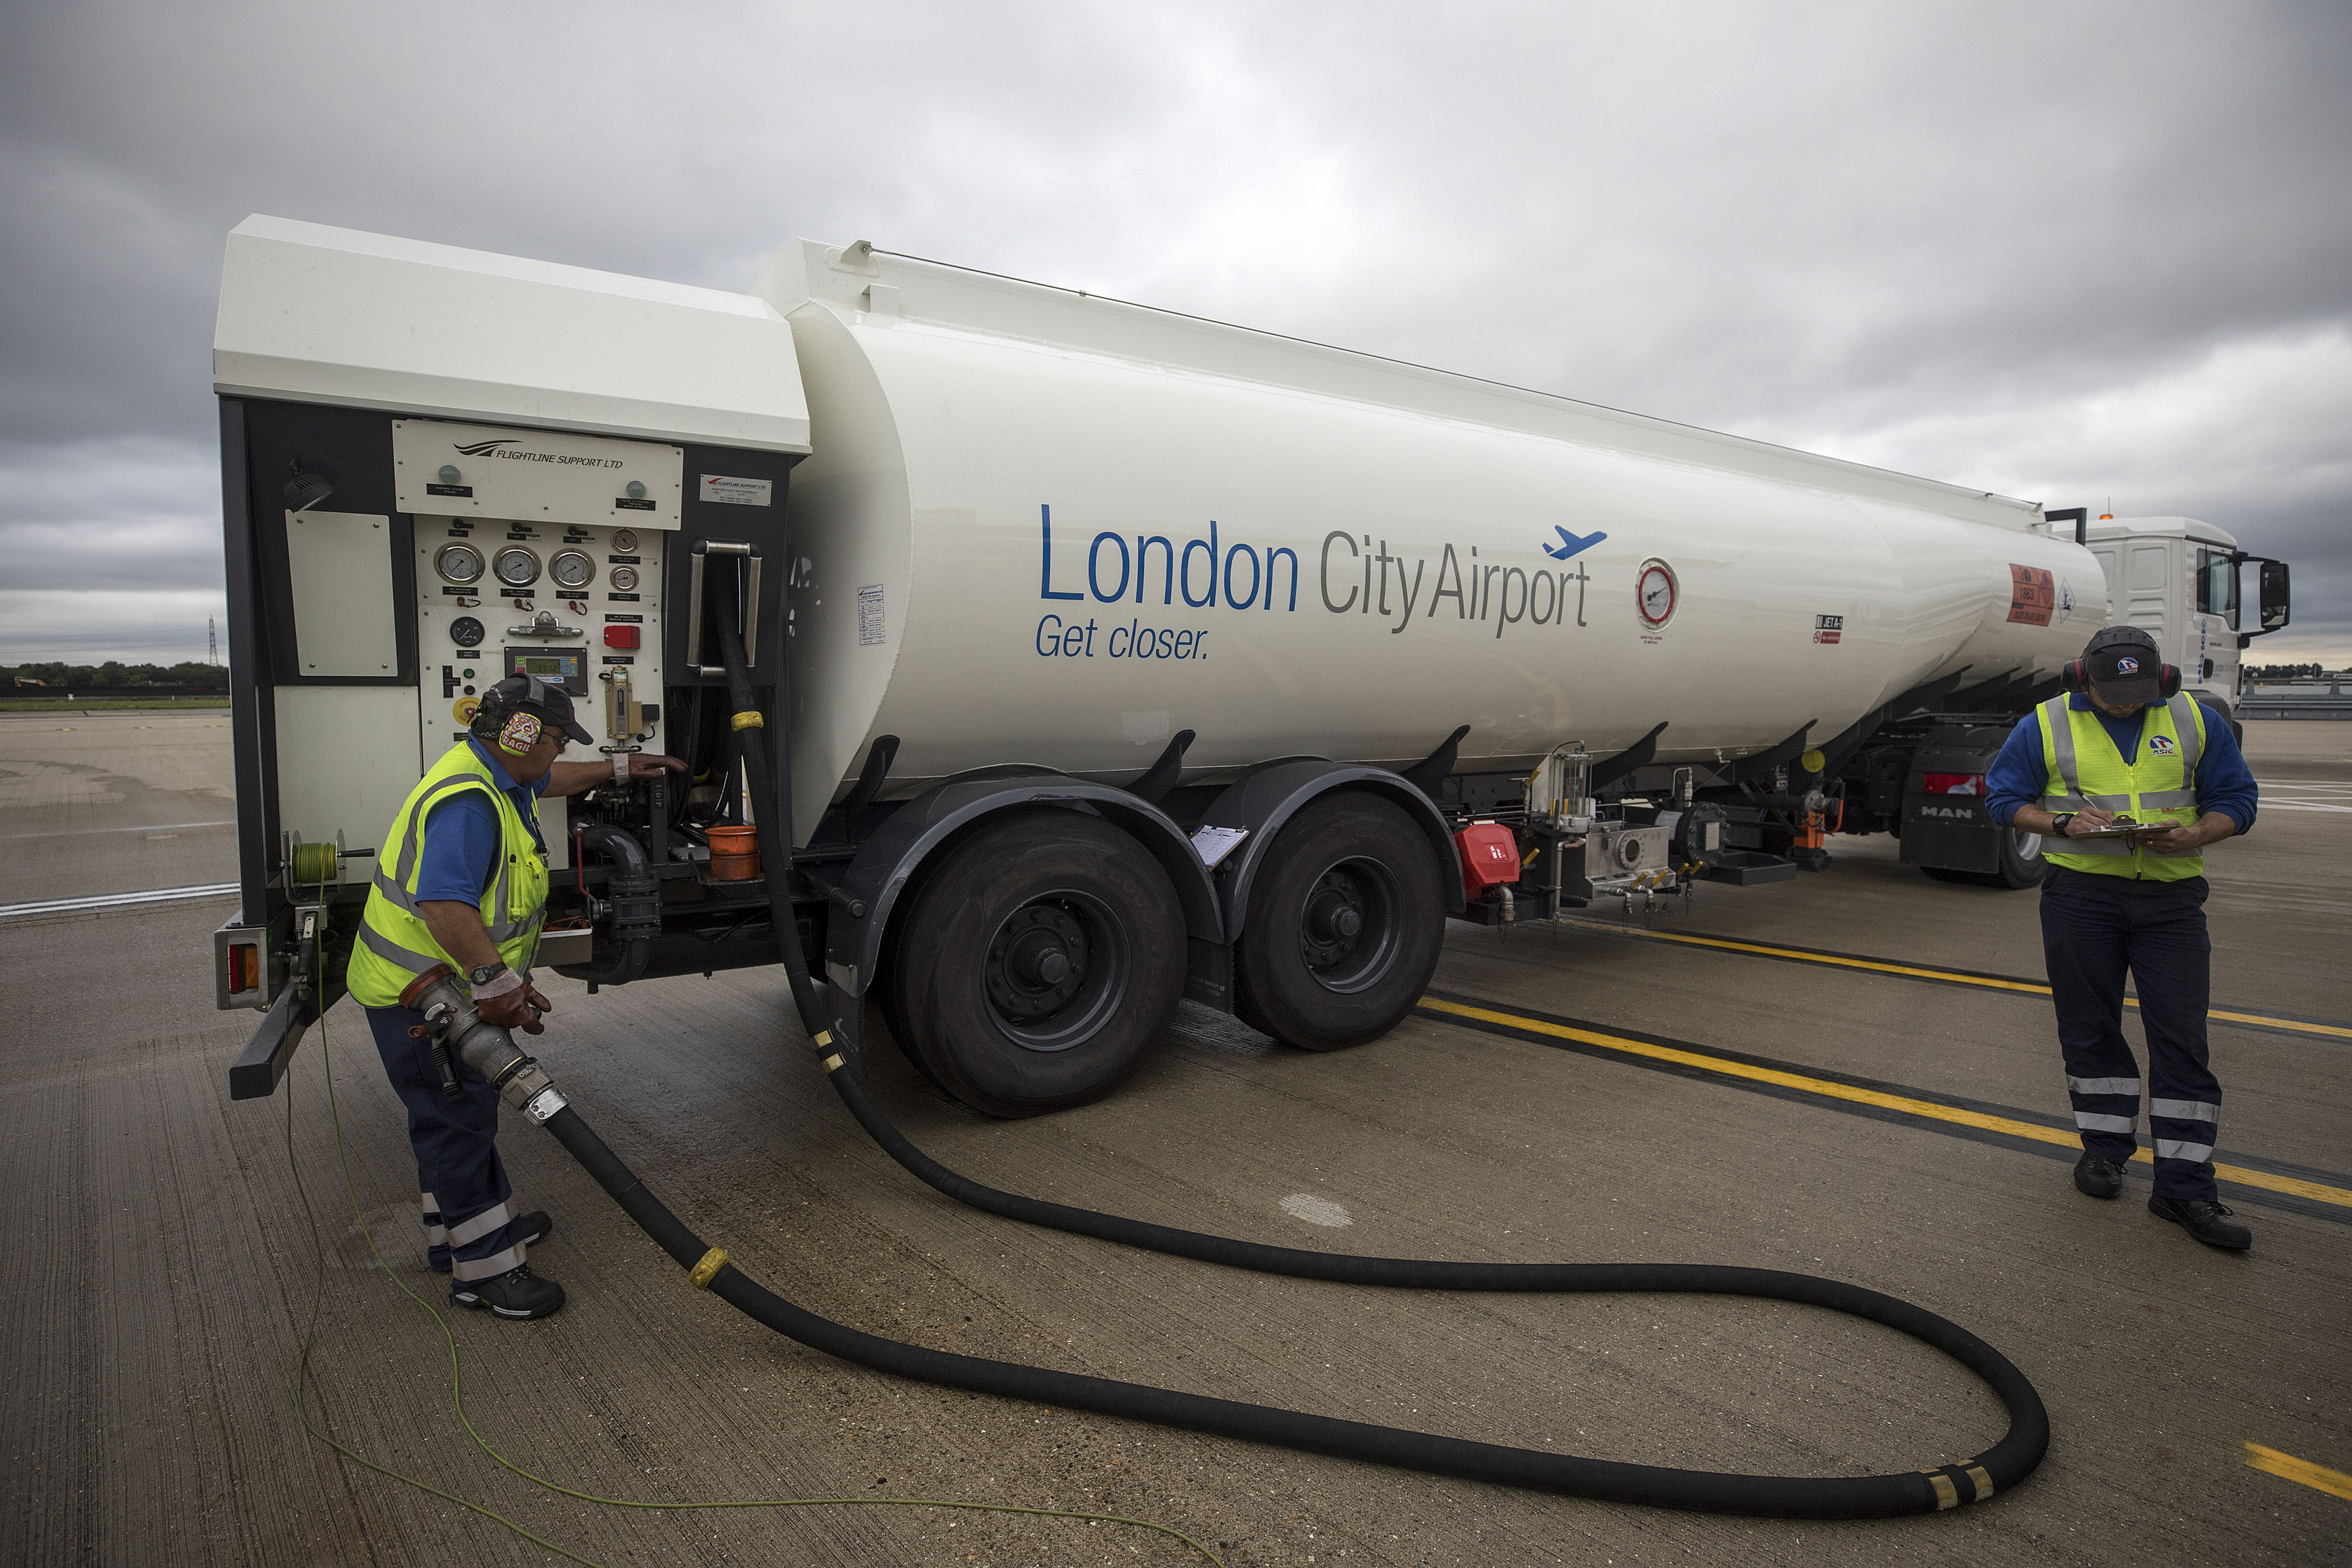 Members of the ground crew move a fuel hose at London City Airport (LCY), in London, U.K., on Tuesday, Aug. 8, 2017. The chief Brexit concern of carriers is to maintain a single market for air travel which wouldallow existing routes between Britain and the EU to continue.